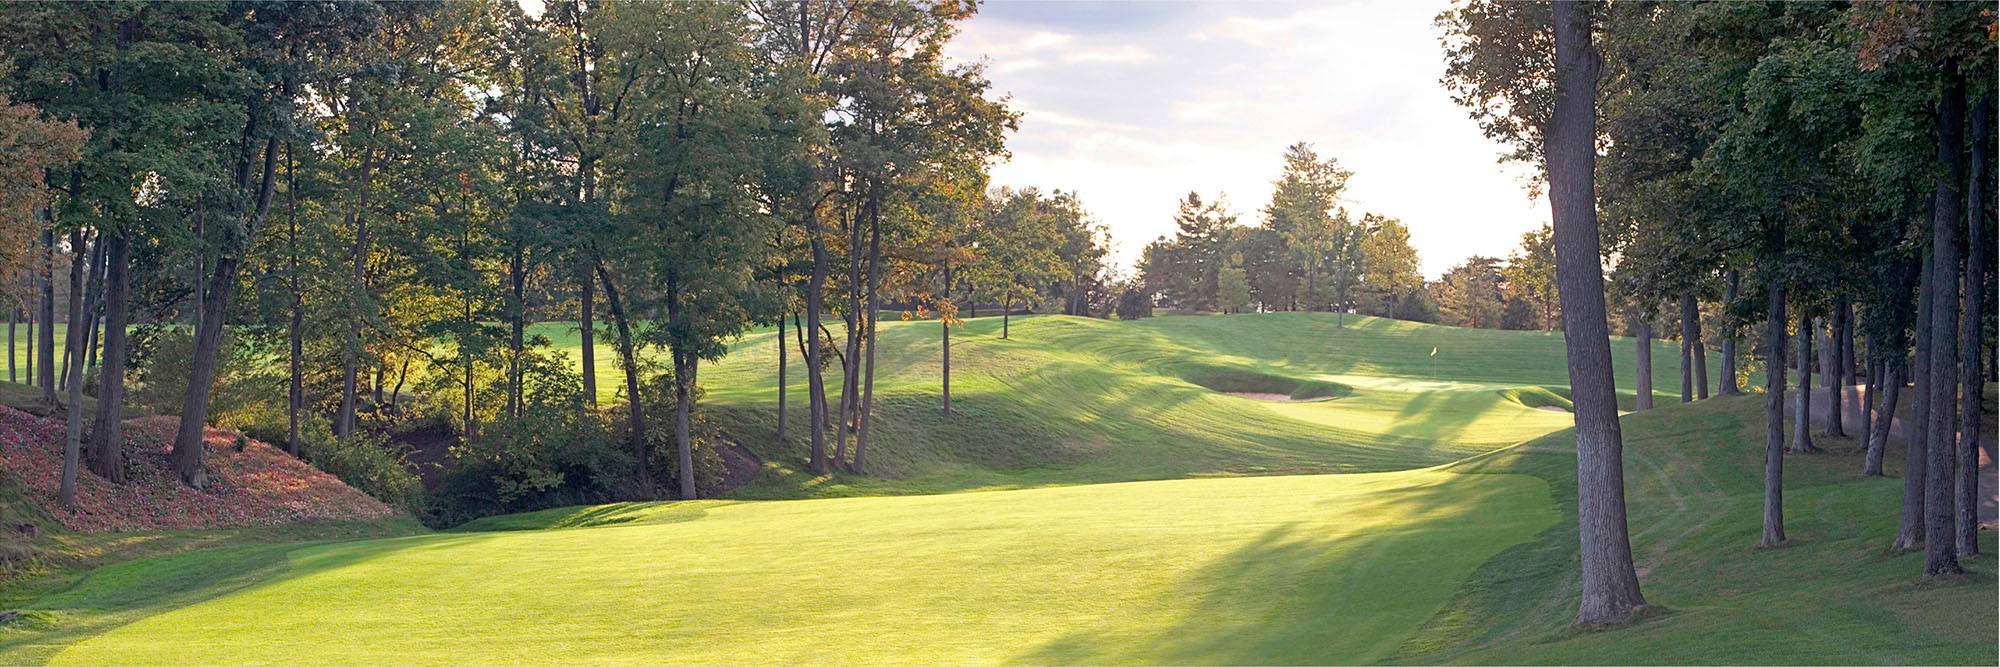 Golf Course Image - Muirfield Village No. 15